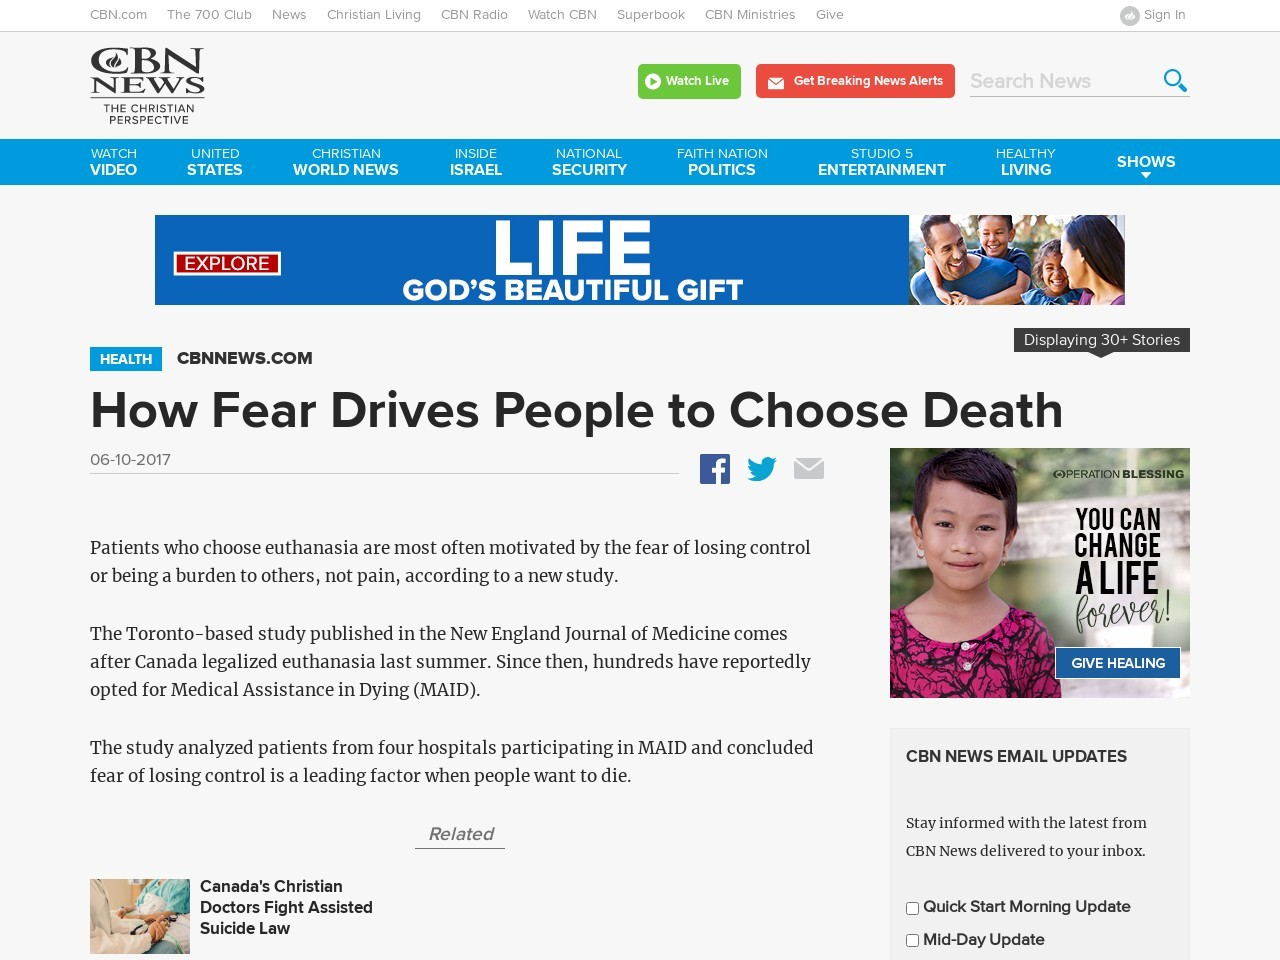 How Fear Drives People to Choose Death